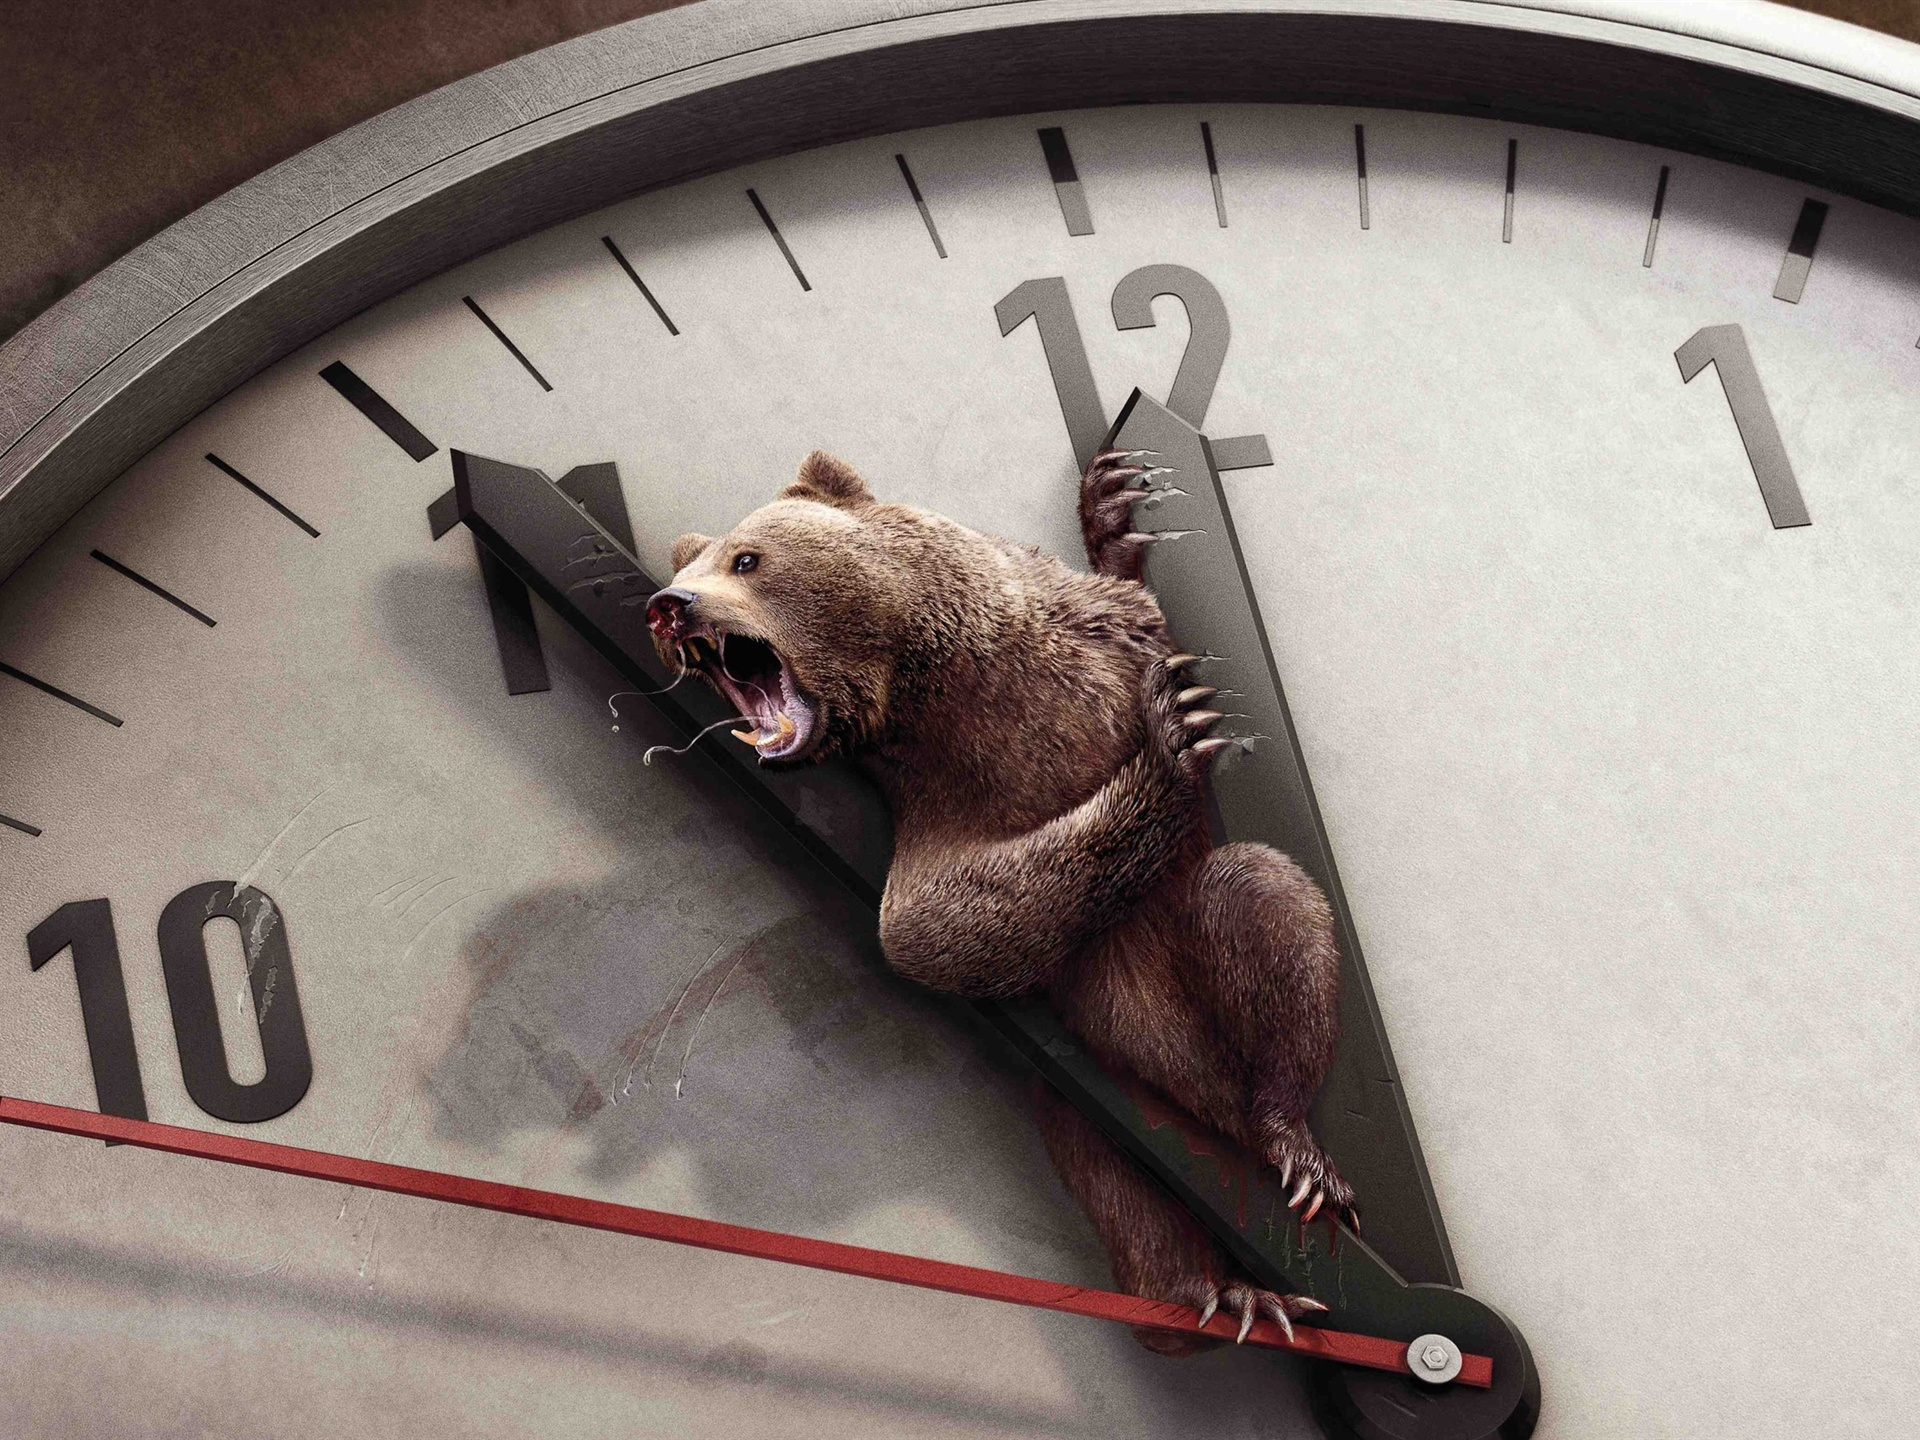 Creative picture of bear on the clock dial wallpaper - 1920x1440